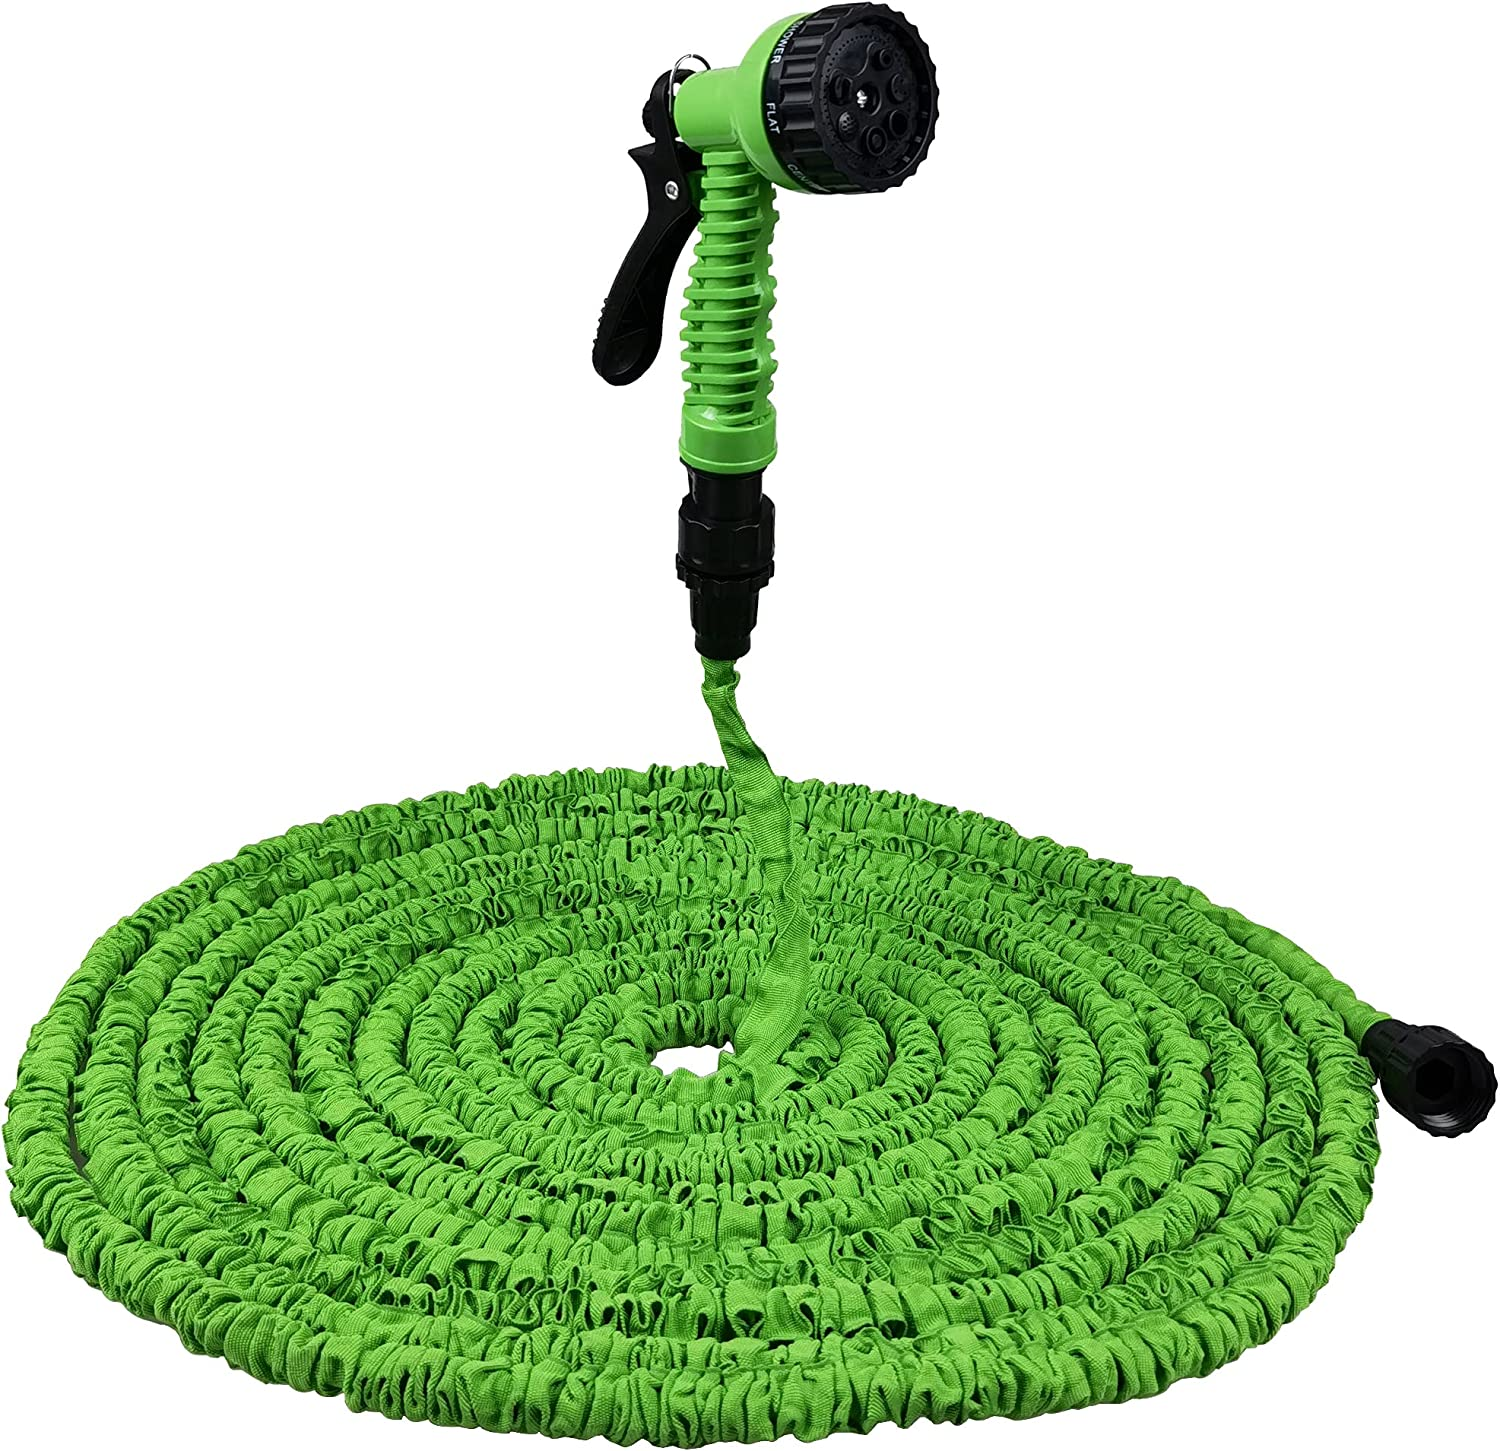 Expandable Garden Hose 100 ft, Water Collapsible Hose with 7 Function Spray Nozzle, Durable 3-Layers Latex Core with 3/4